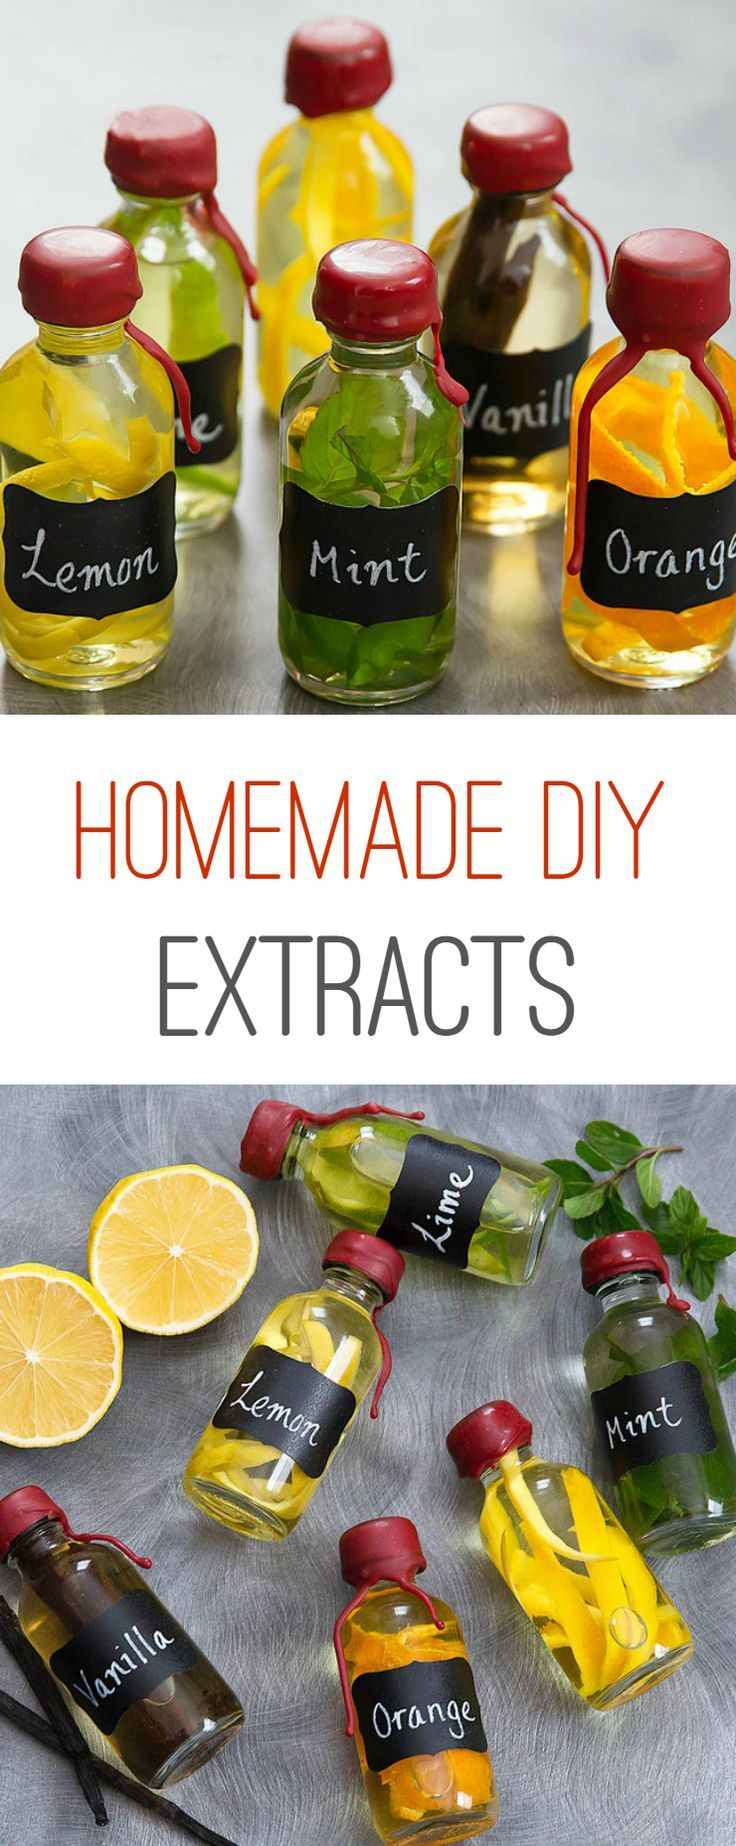 Homemade DIY Extracts. Easy to make your own at home and fun to gift!